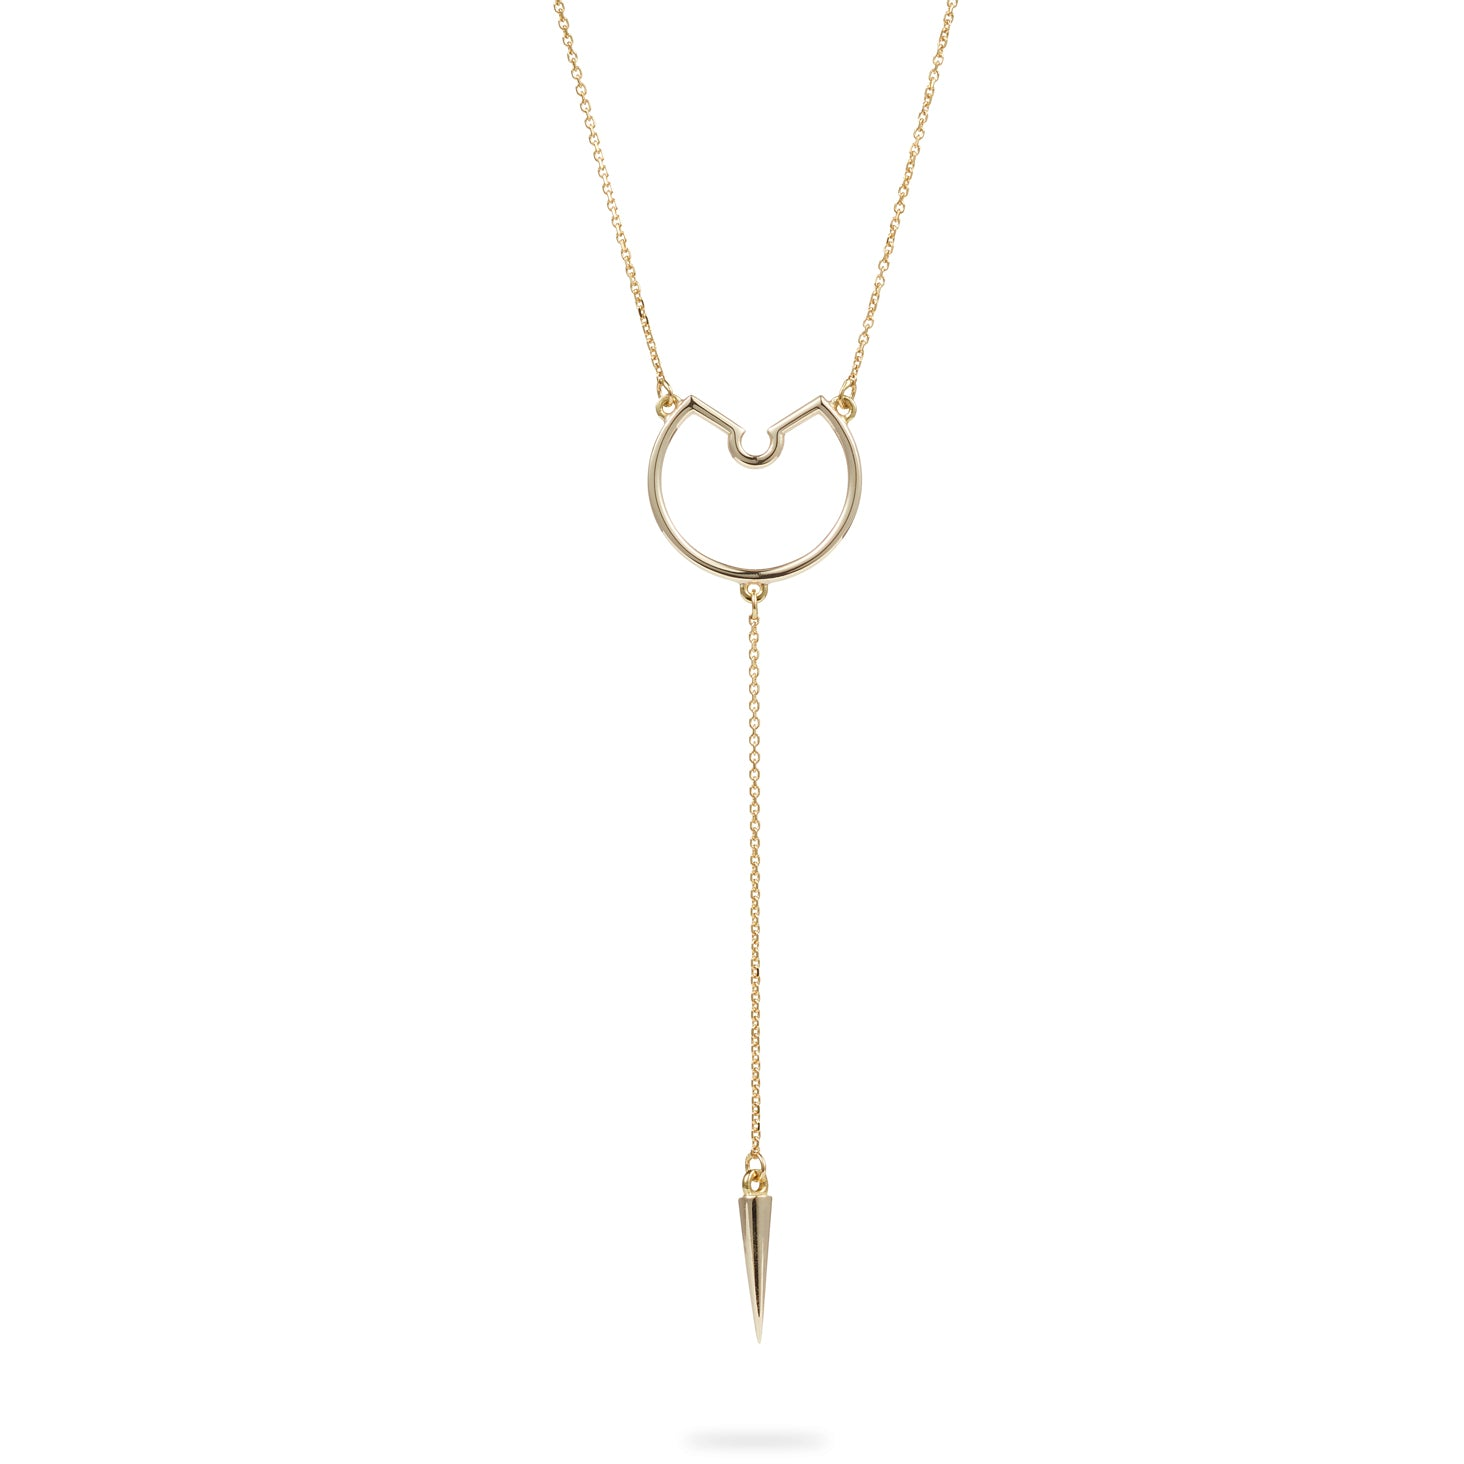 Luke Rose Jewellery gold drop necklace